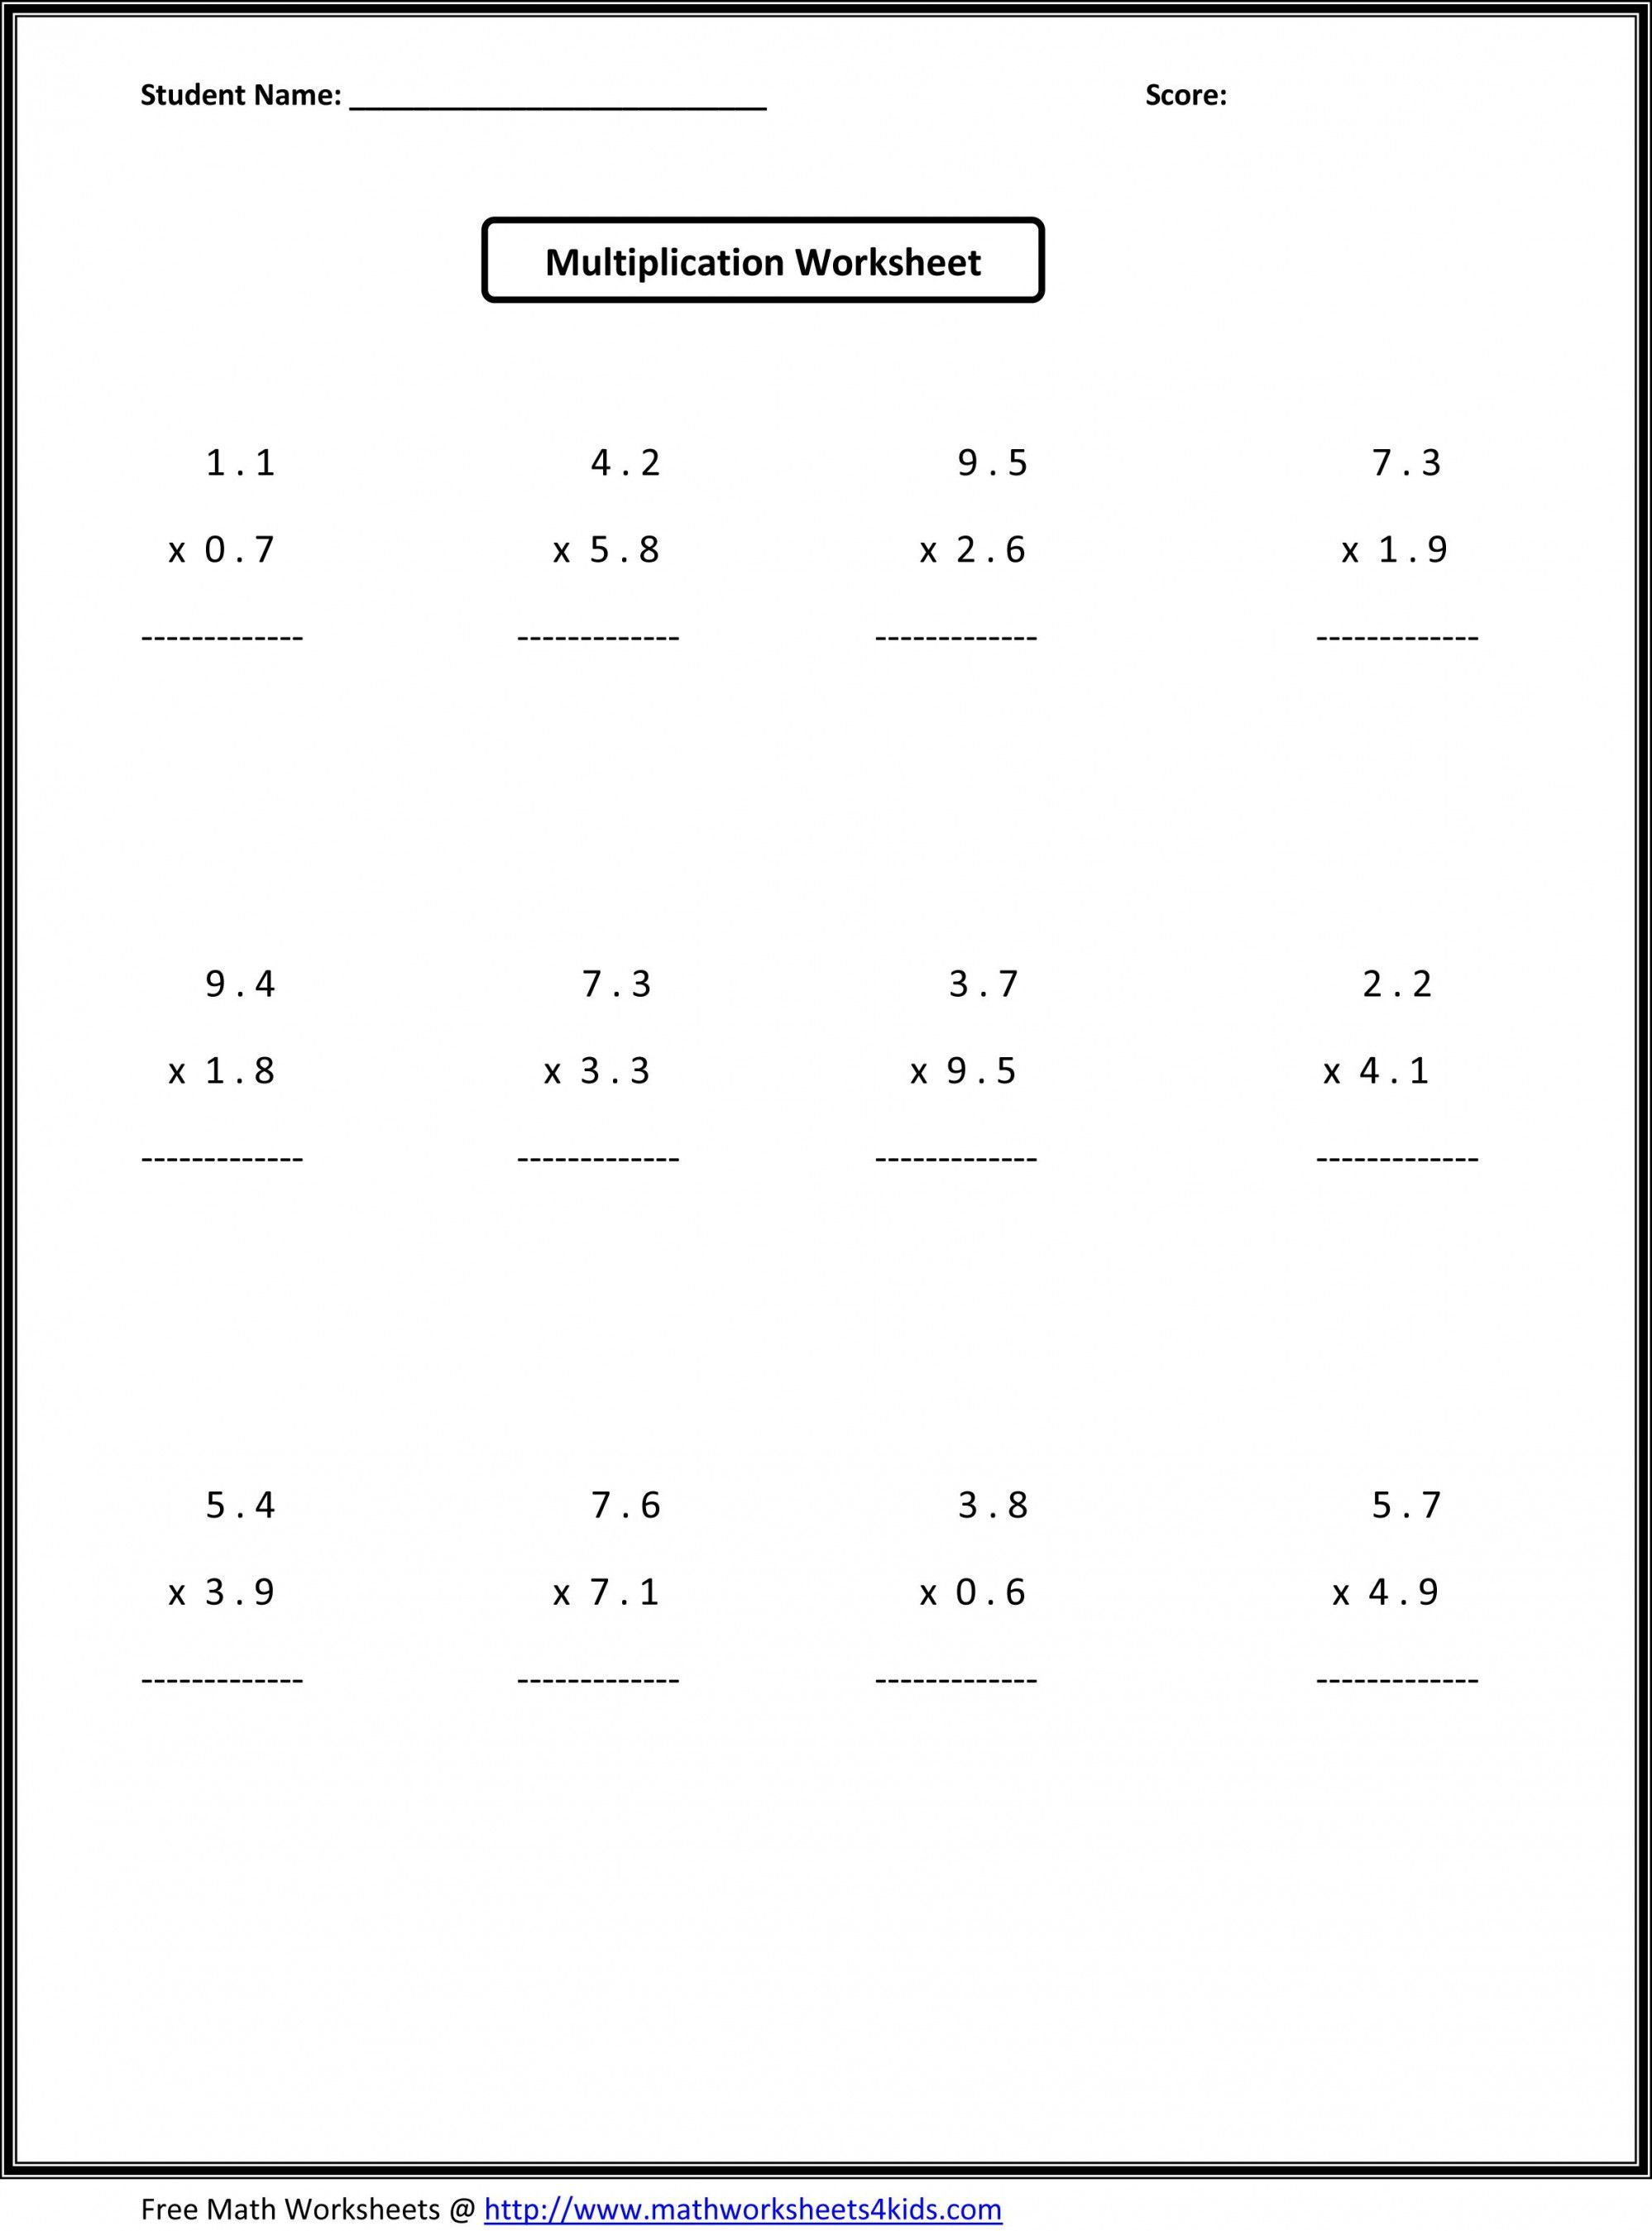 6th Grade Multiplication Worksheets